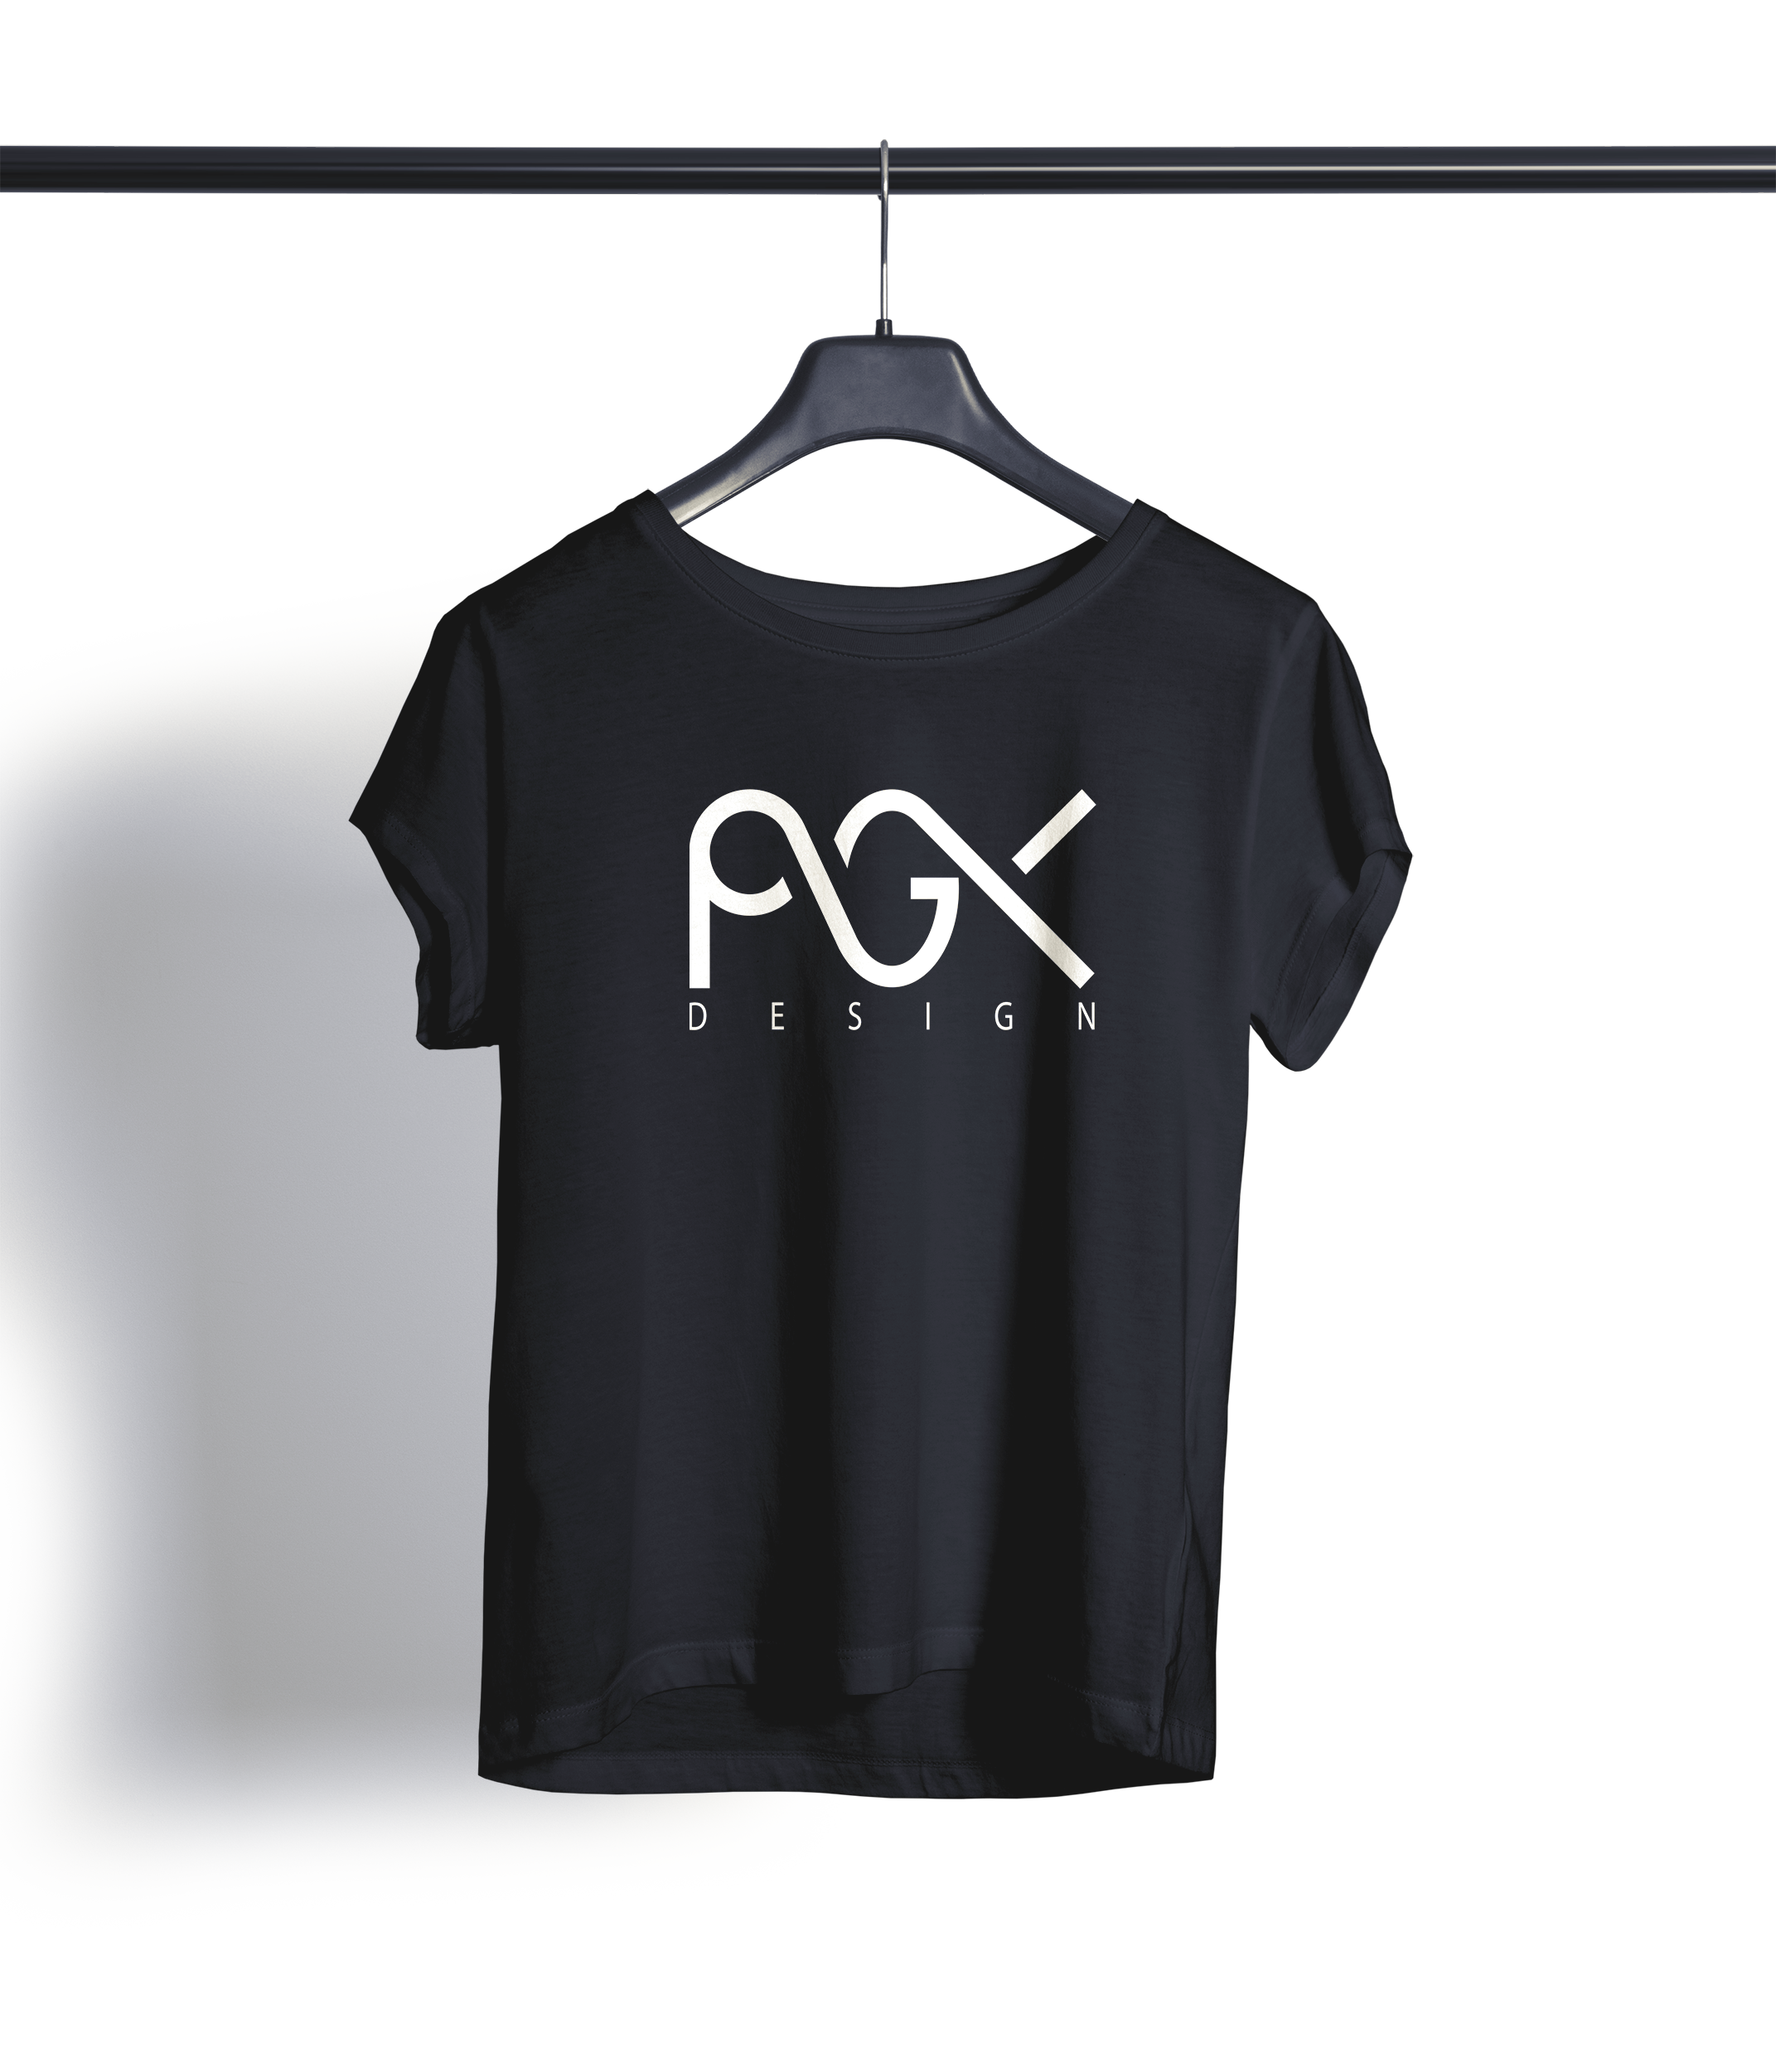 T shirt mockup png. Shirts mockups on demand